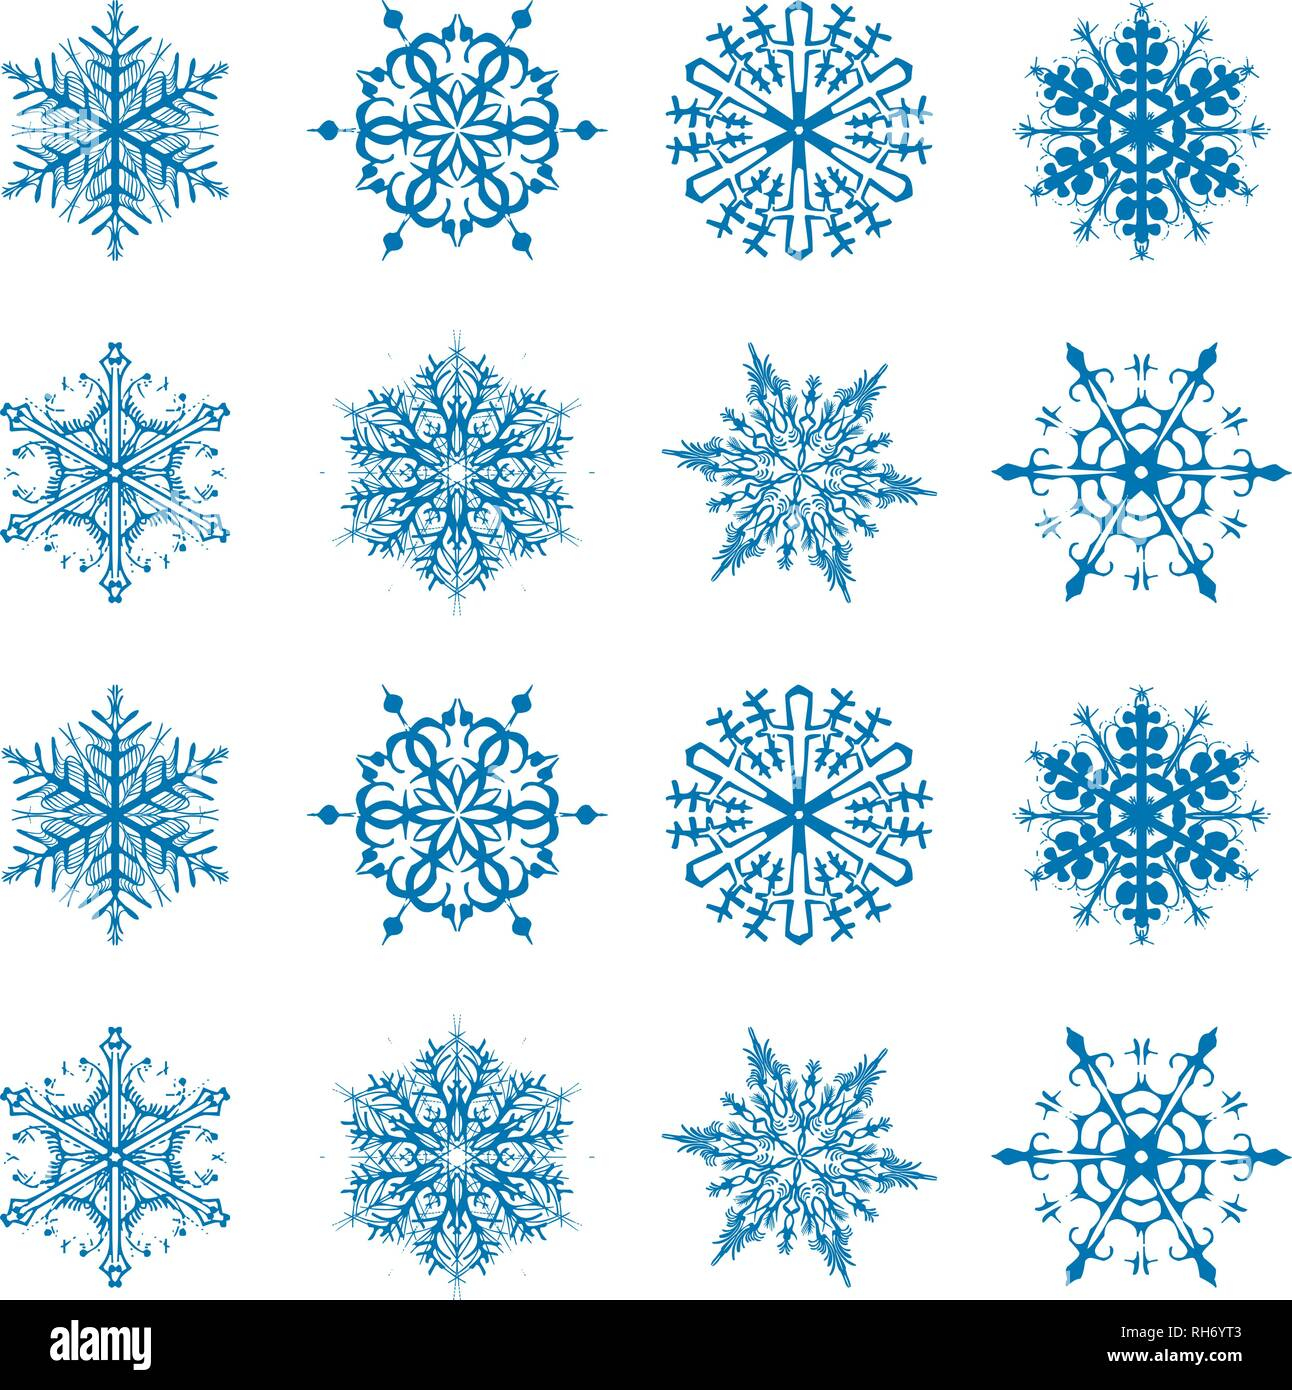 White Christmas Snow Background.Snowflake Vector Icon Background Set Blue Color Winter